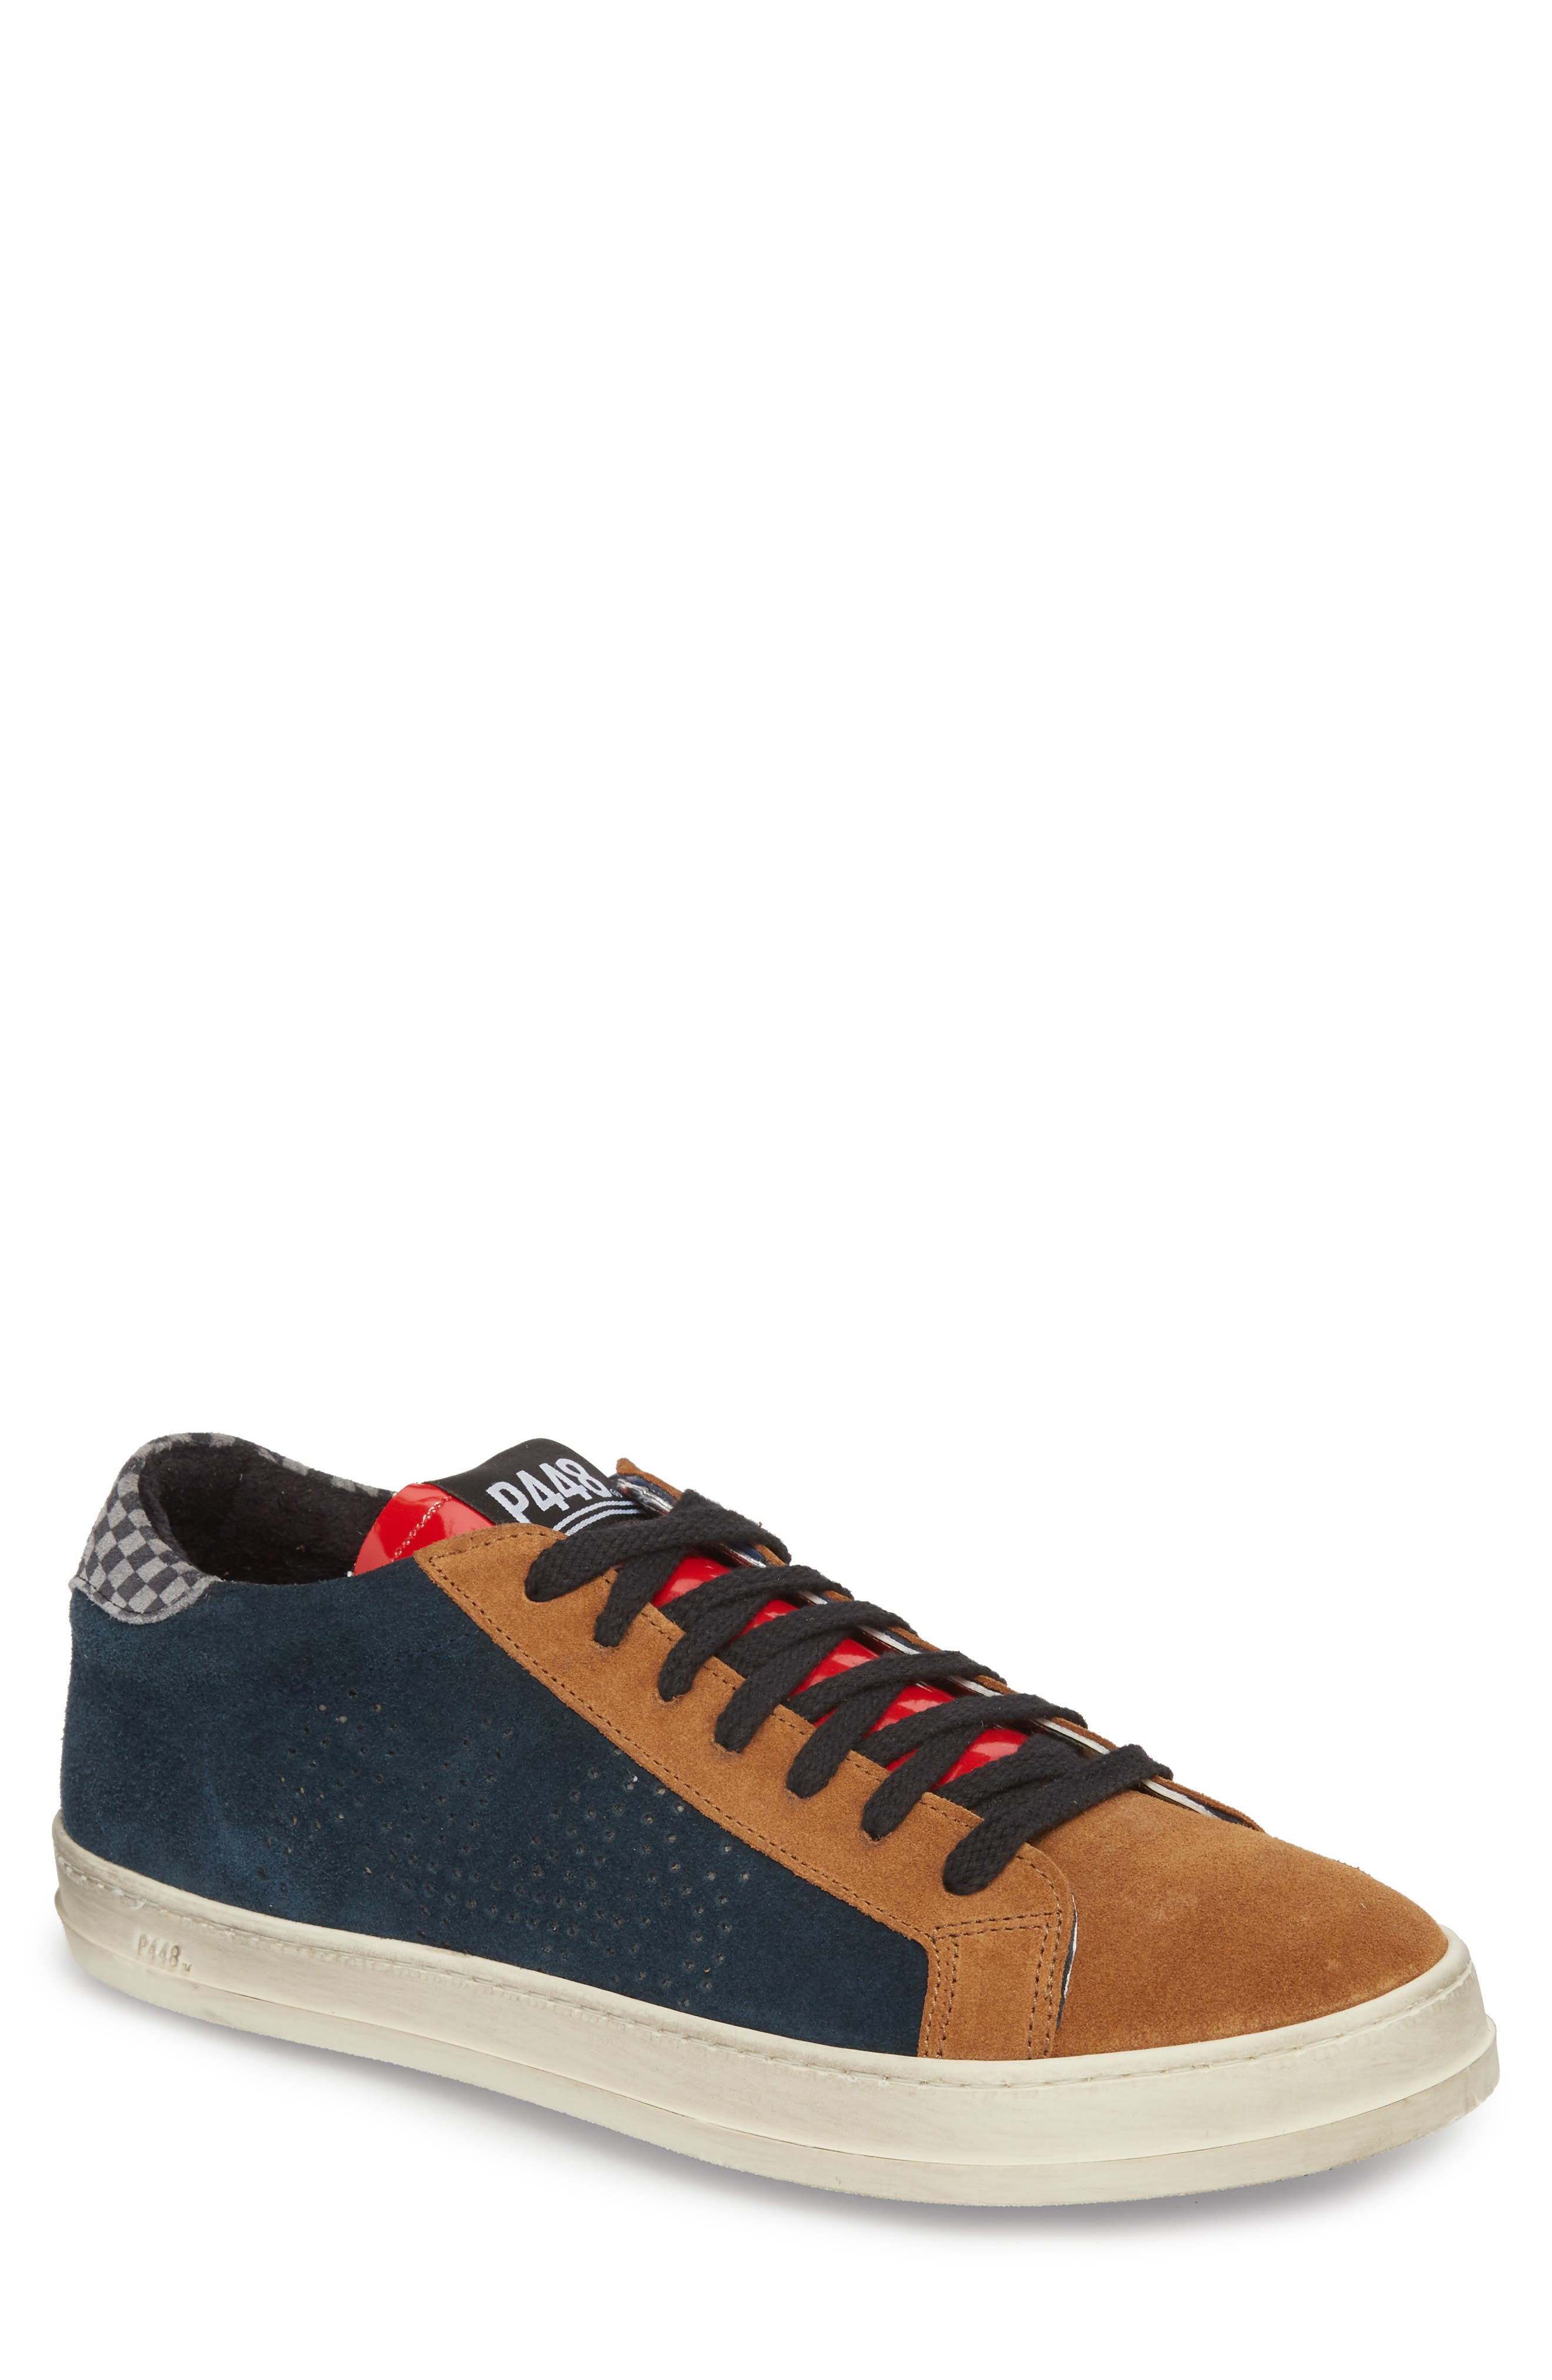 John Mix Low Top Sneaker,                             Main thumbnail 1, color,                             FOREST BLUE